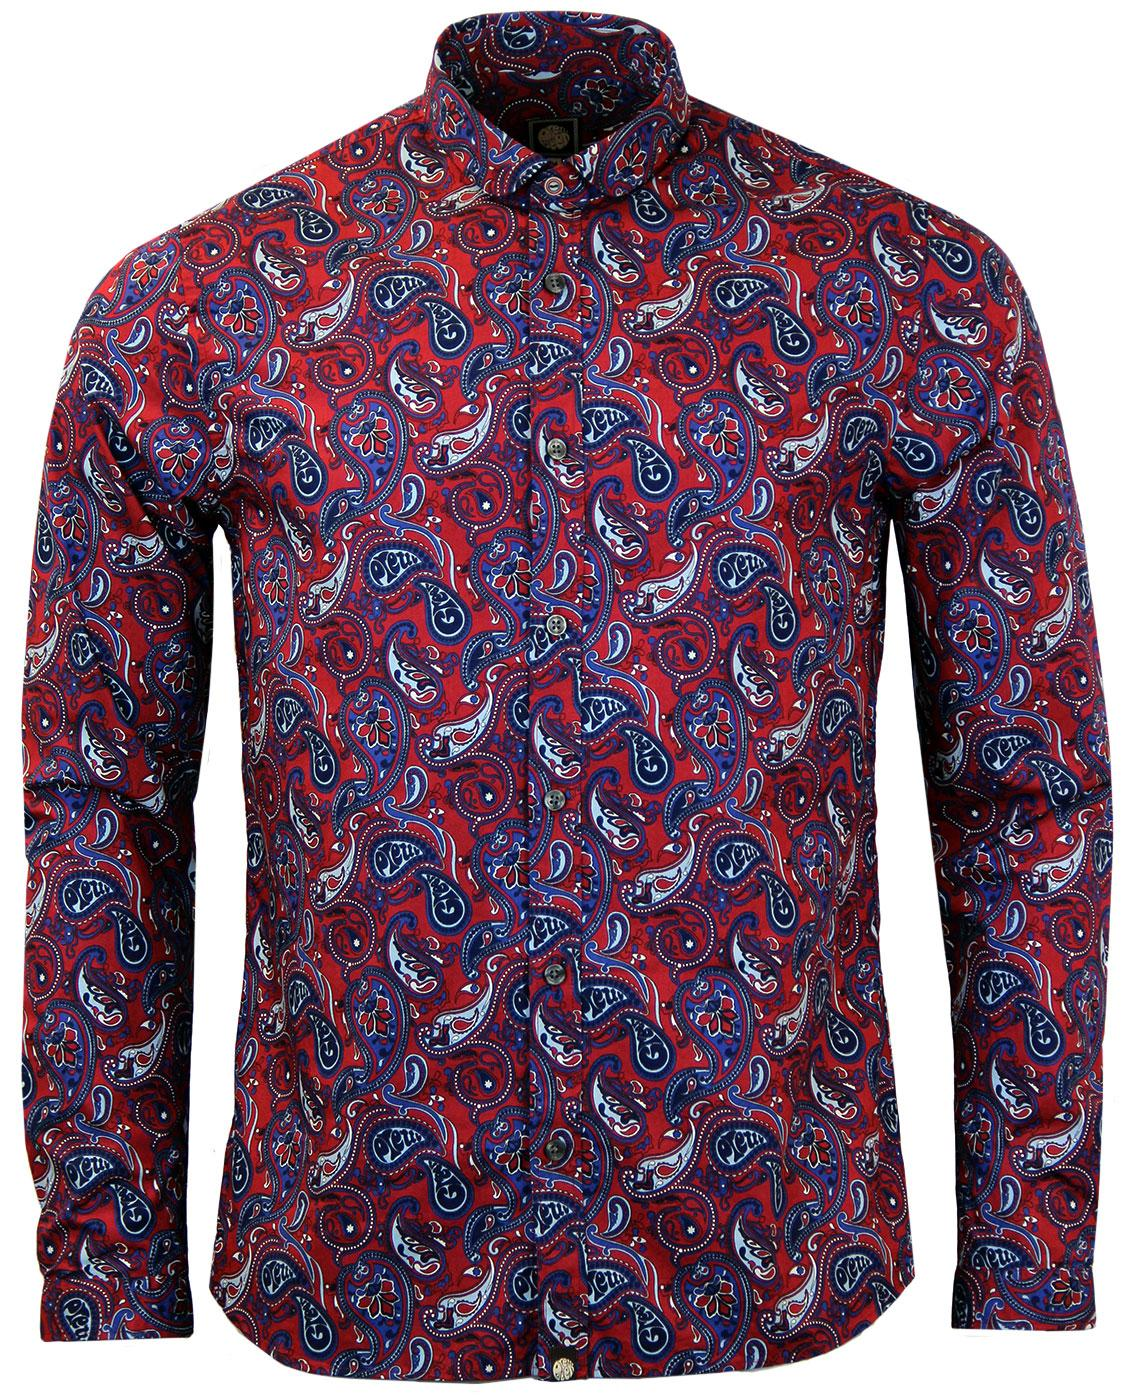 Sefton PRETTY GREEN Mod Psychedelic Paisley Shirt